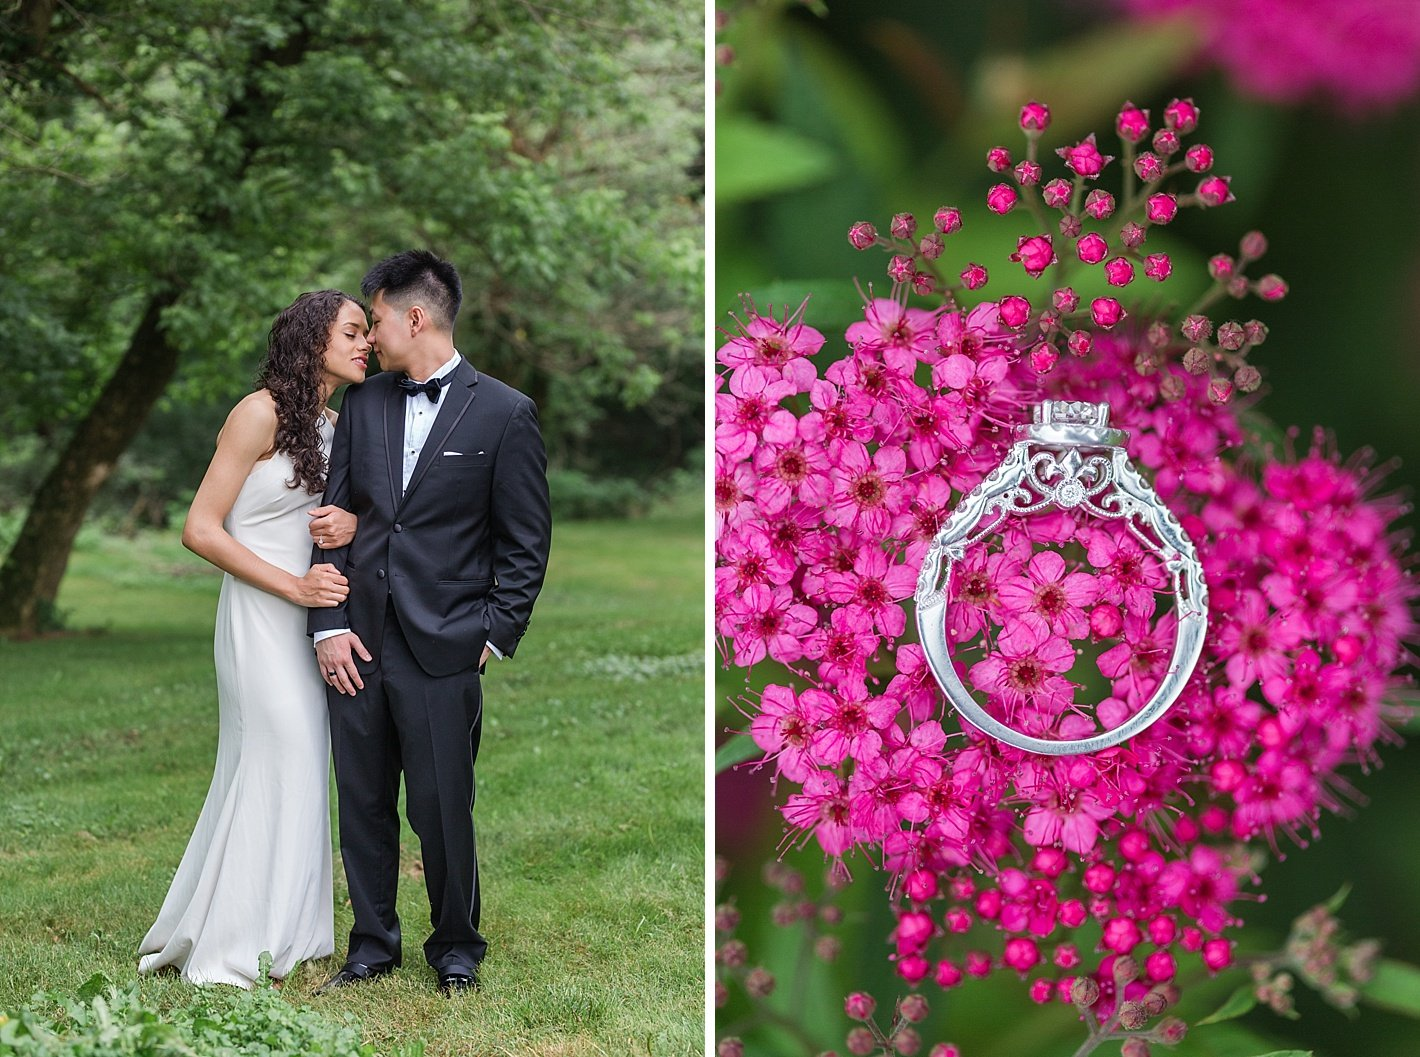 ceresville mansion, engagement photography, engagement session formal attire, frederick md engagment photographer